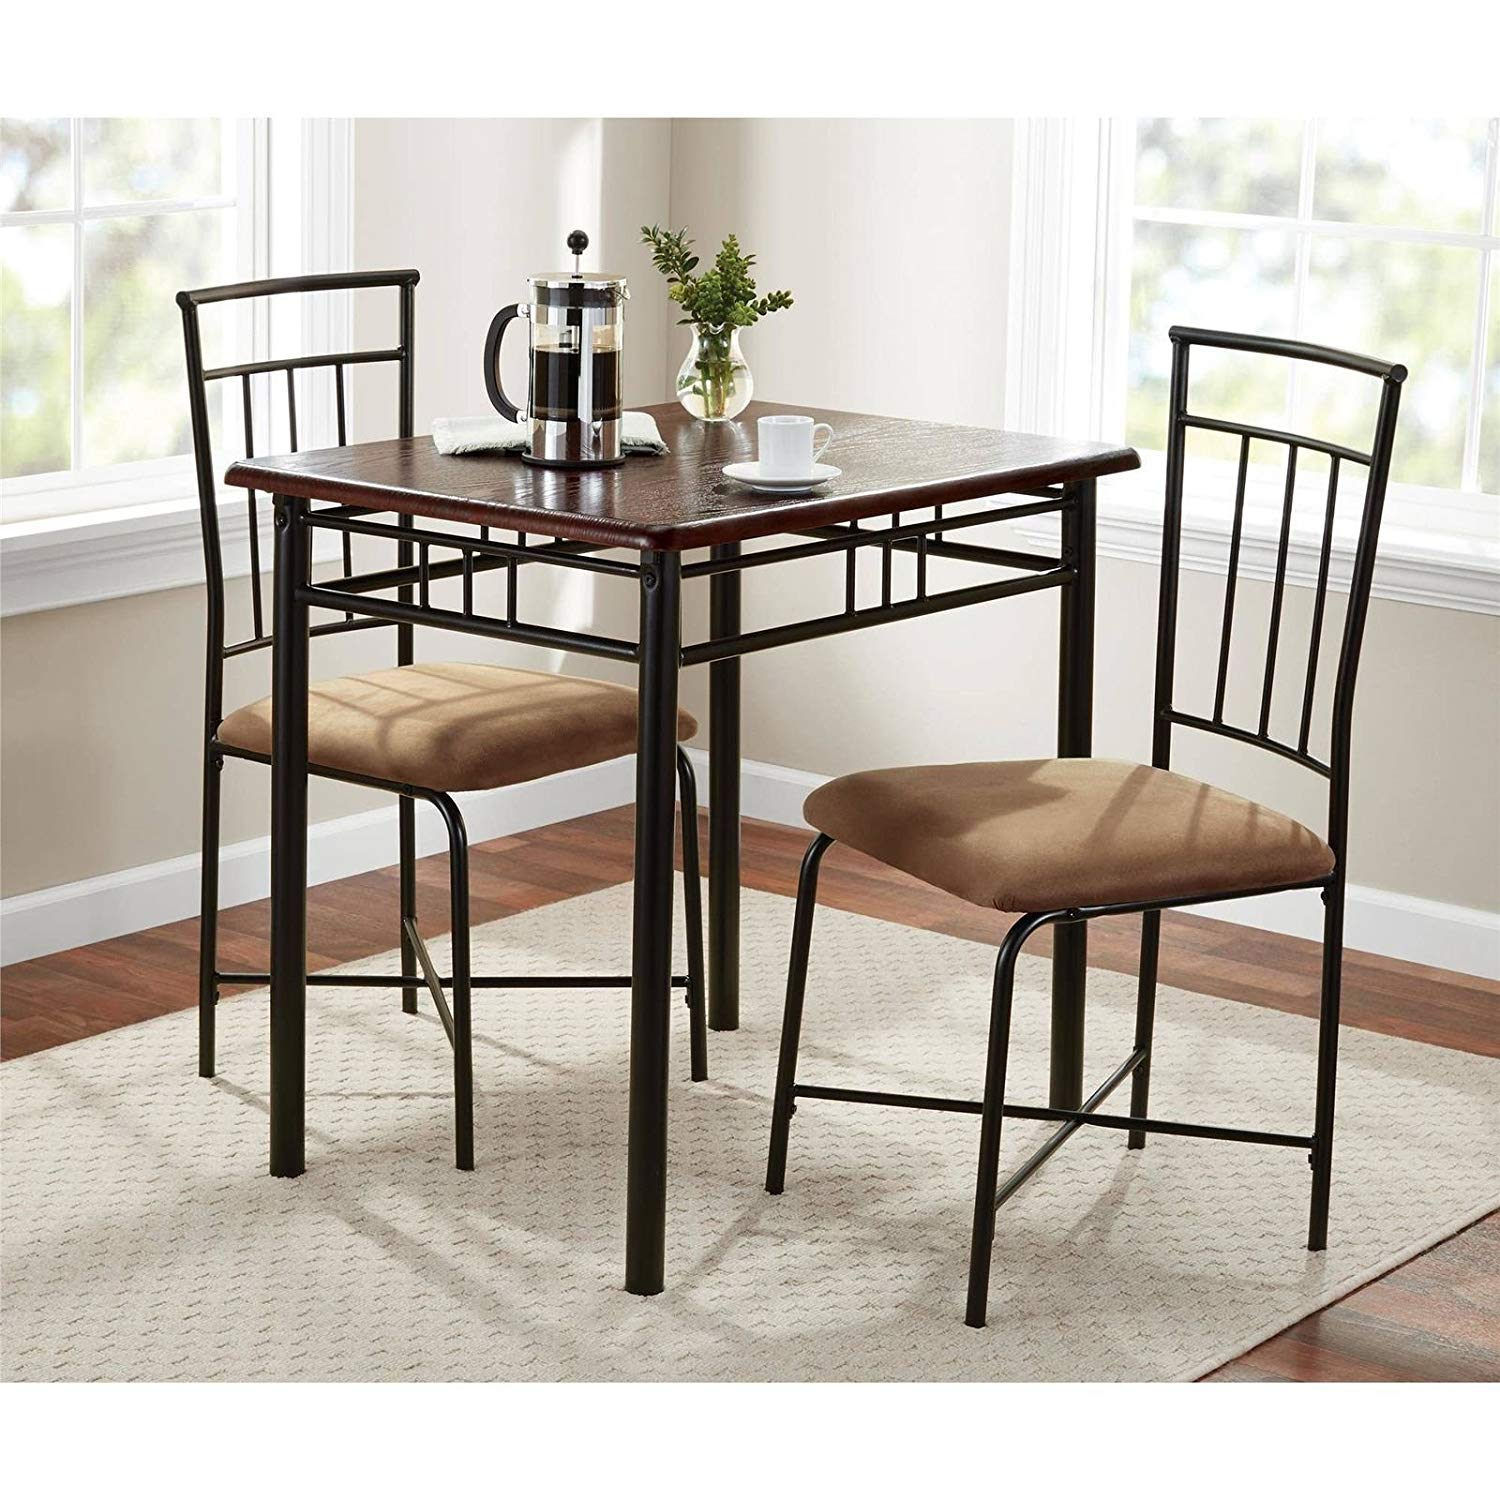 Get quotations · walnut 3 piece dining table set bistro metal chairs breakfast small kitchen furniture